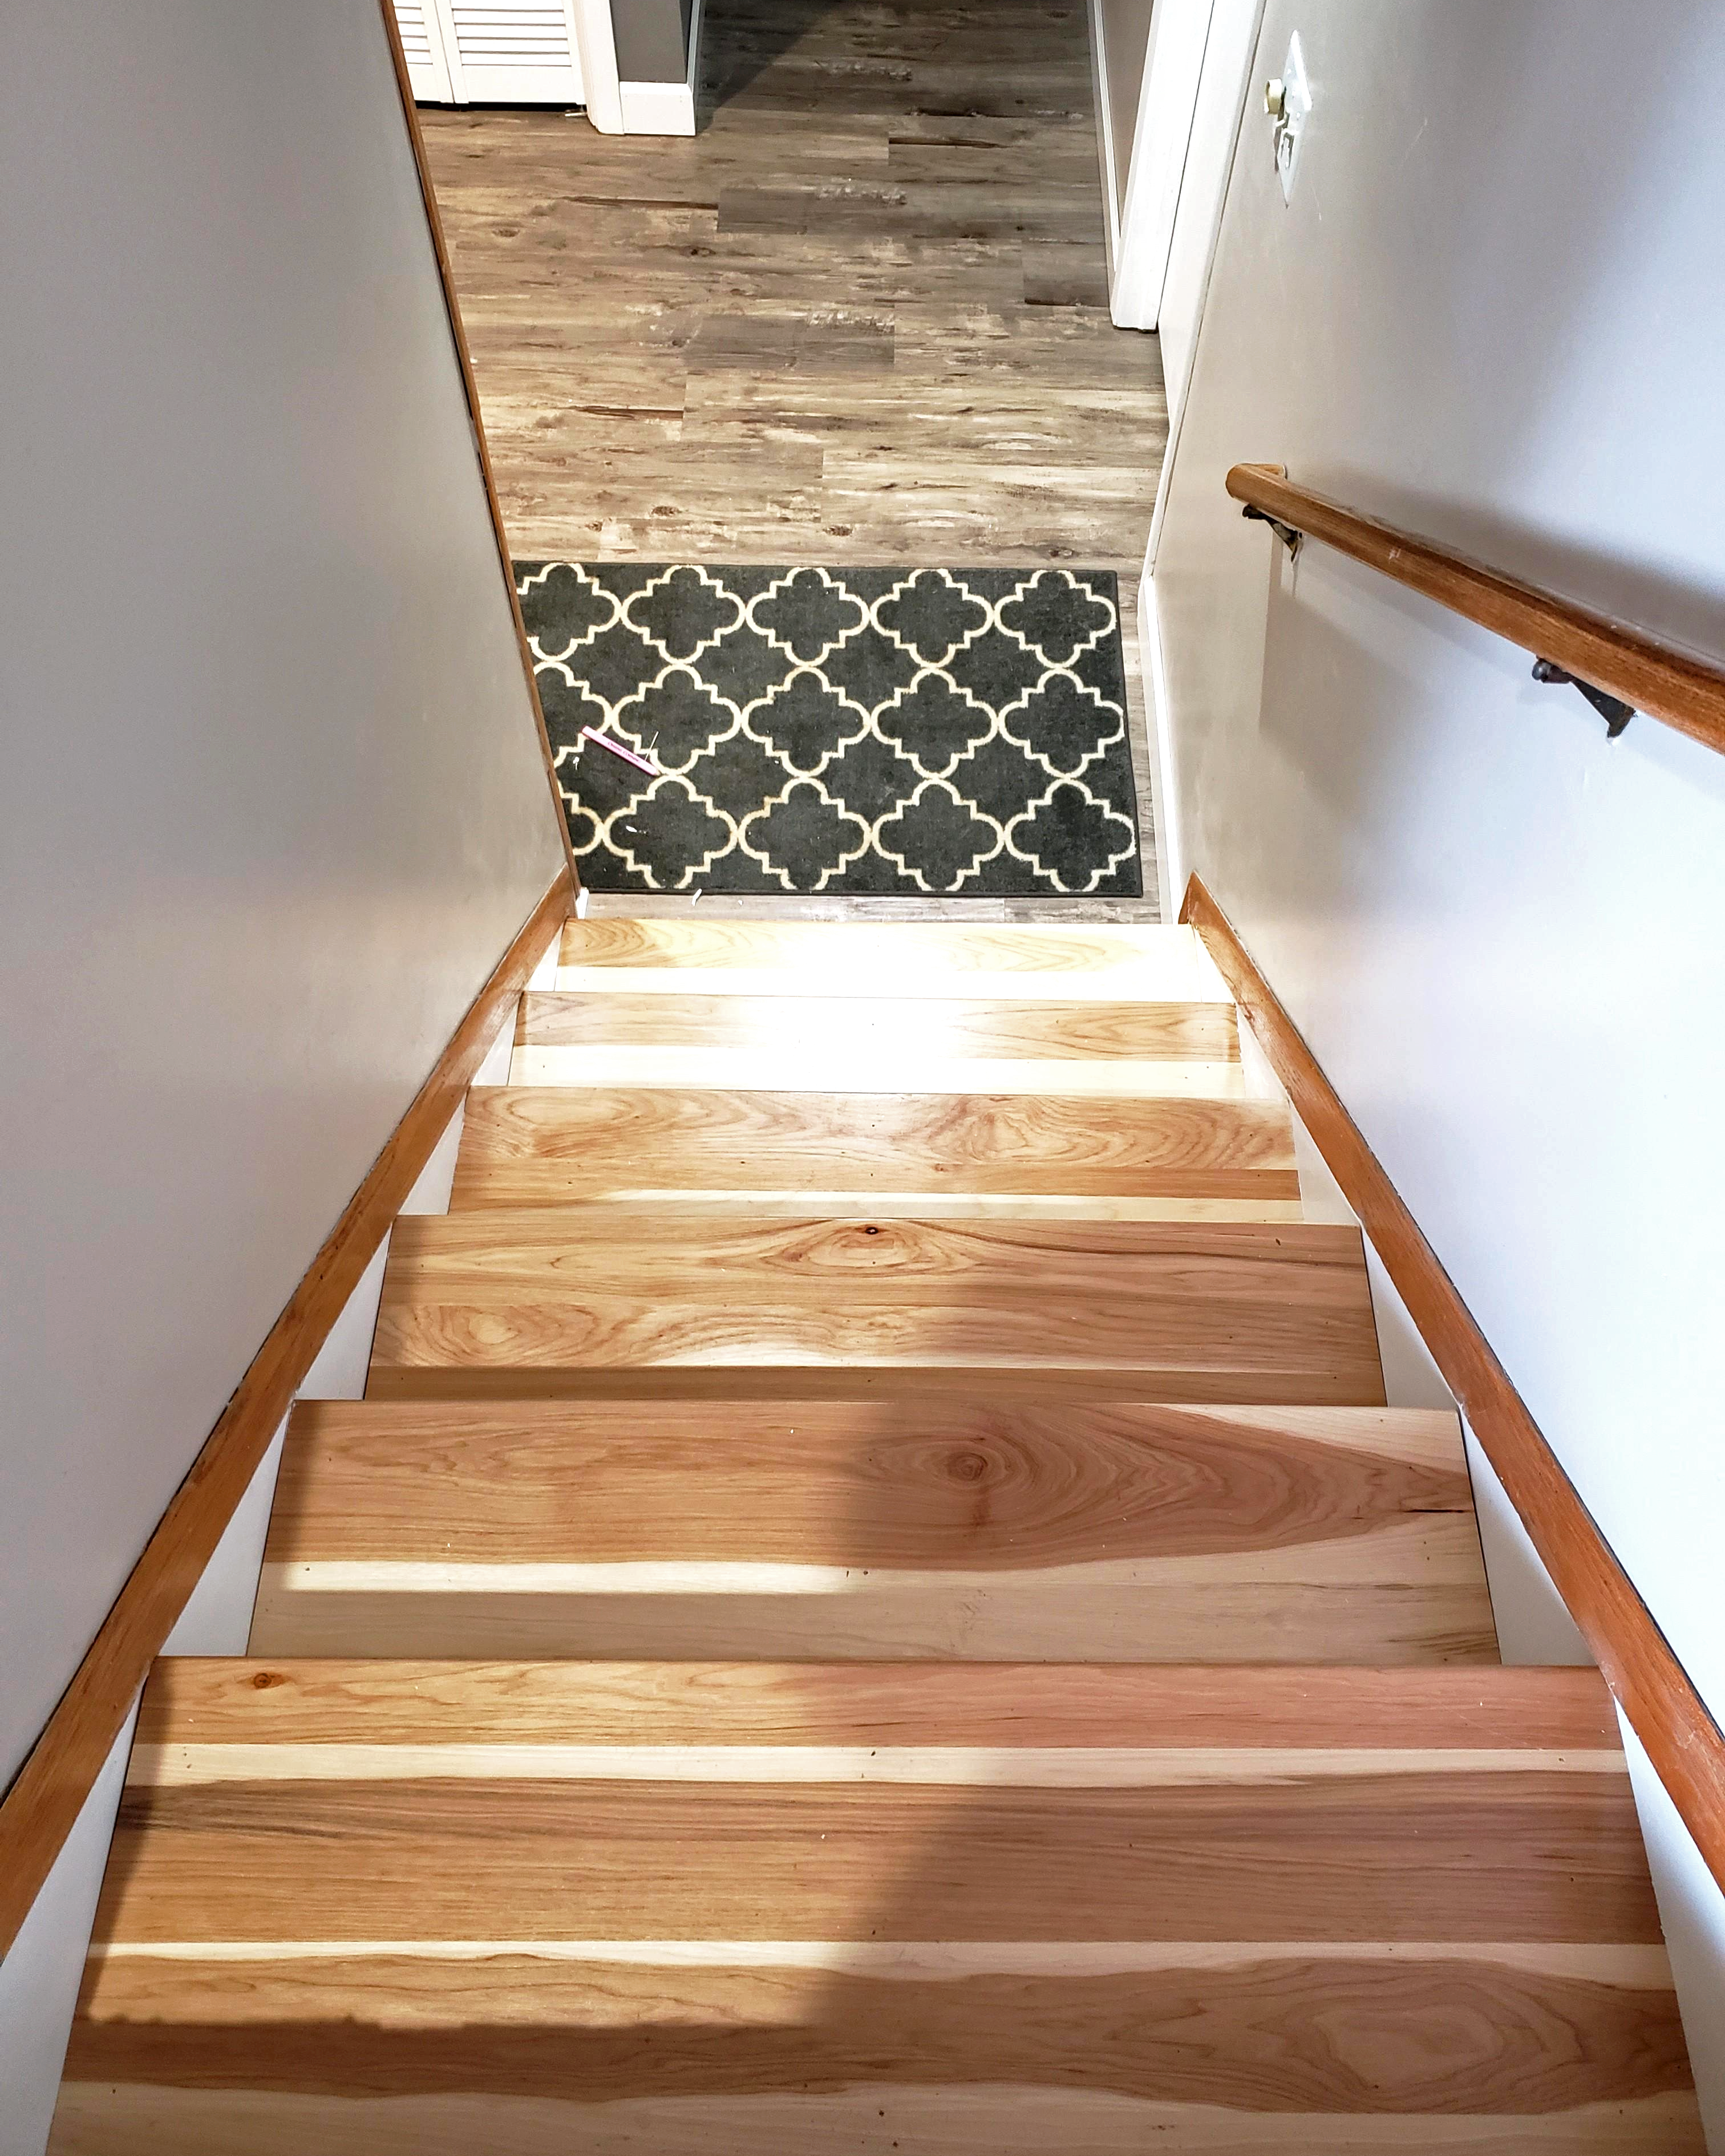 Character Hickory Stair Tread In 2020 Stairs Stair Treads Wood | Unfinished Hickory Stair Treads | Hardwood Lumber | Stair Nosing | Stainable | Flooring | Prefinished